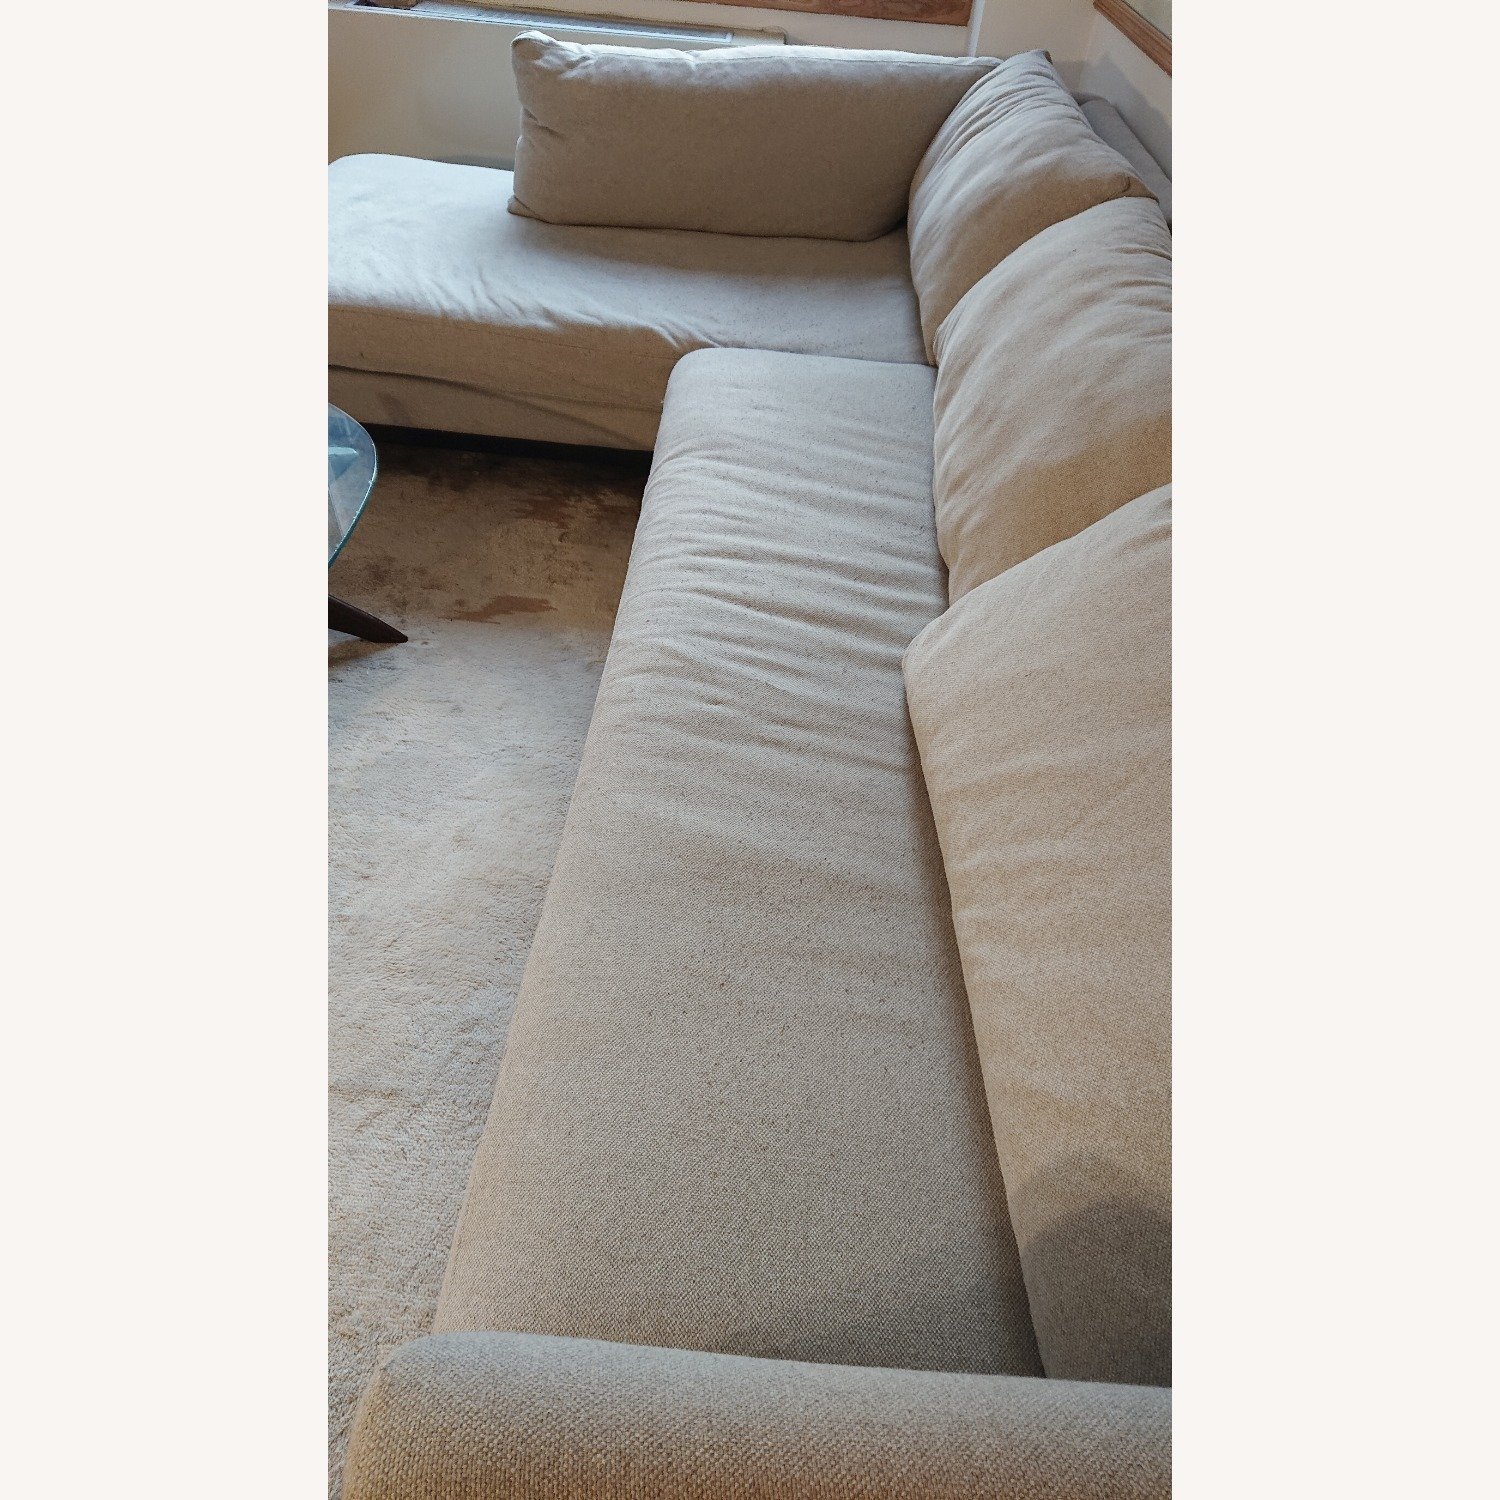 ABC Carpet & Home Prescott Sectional - image-3